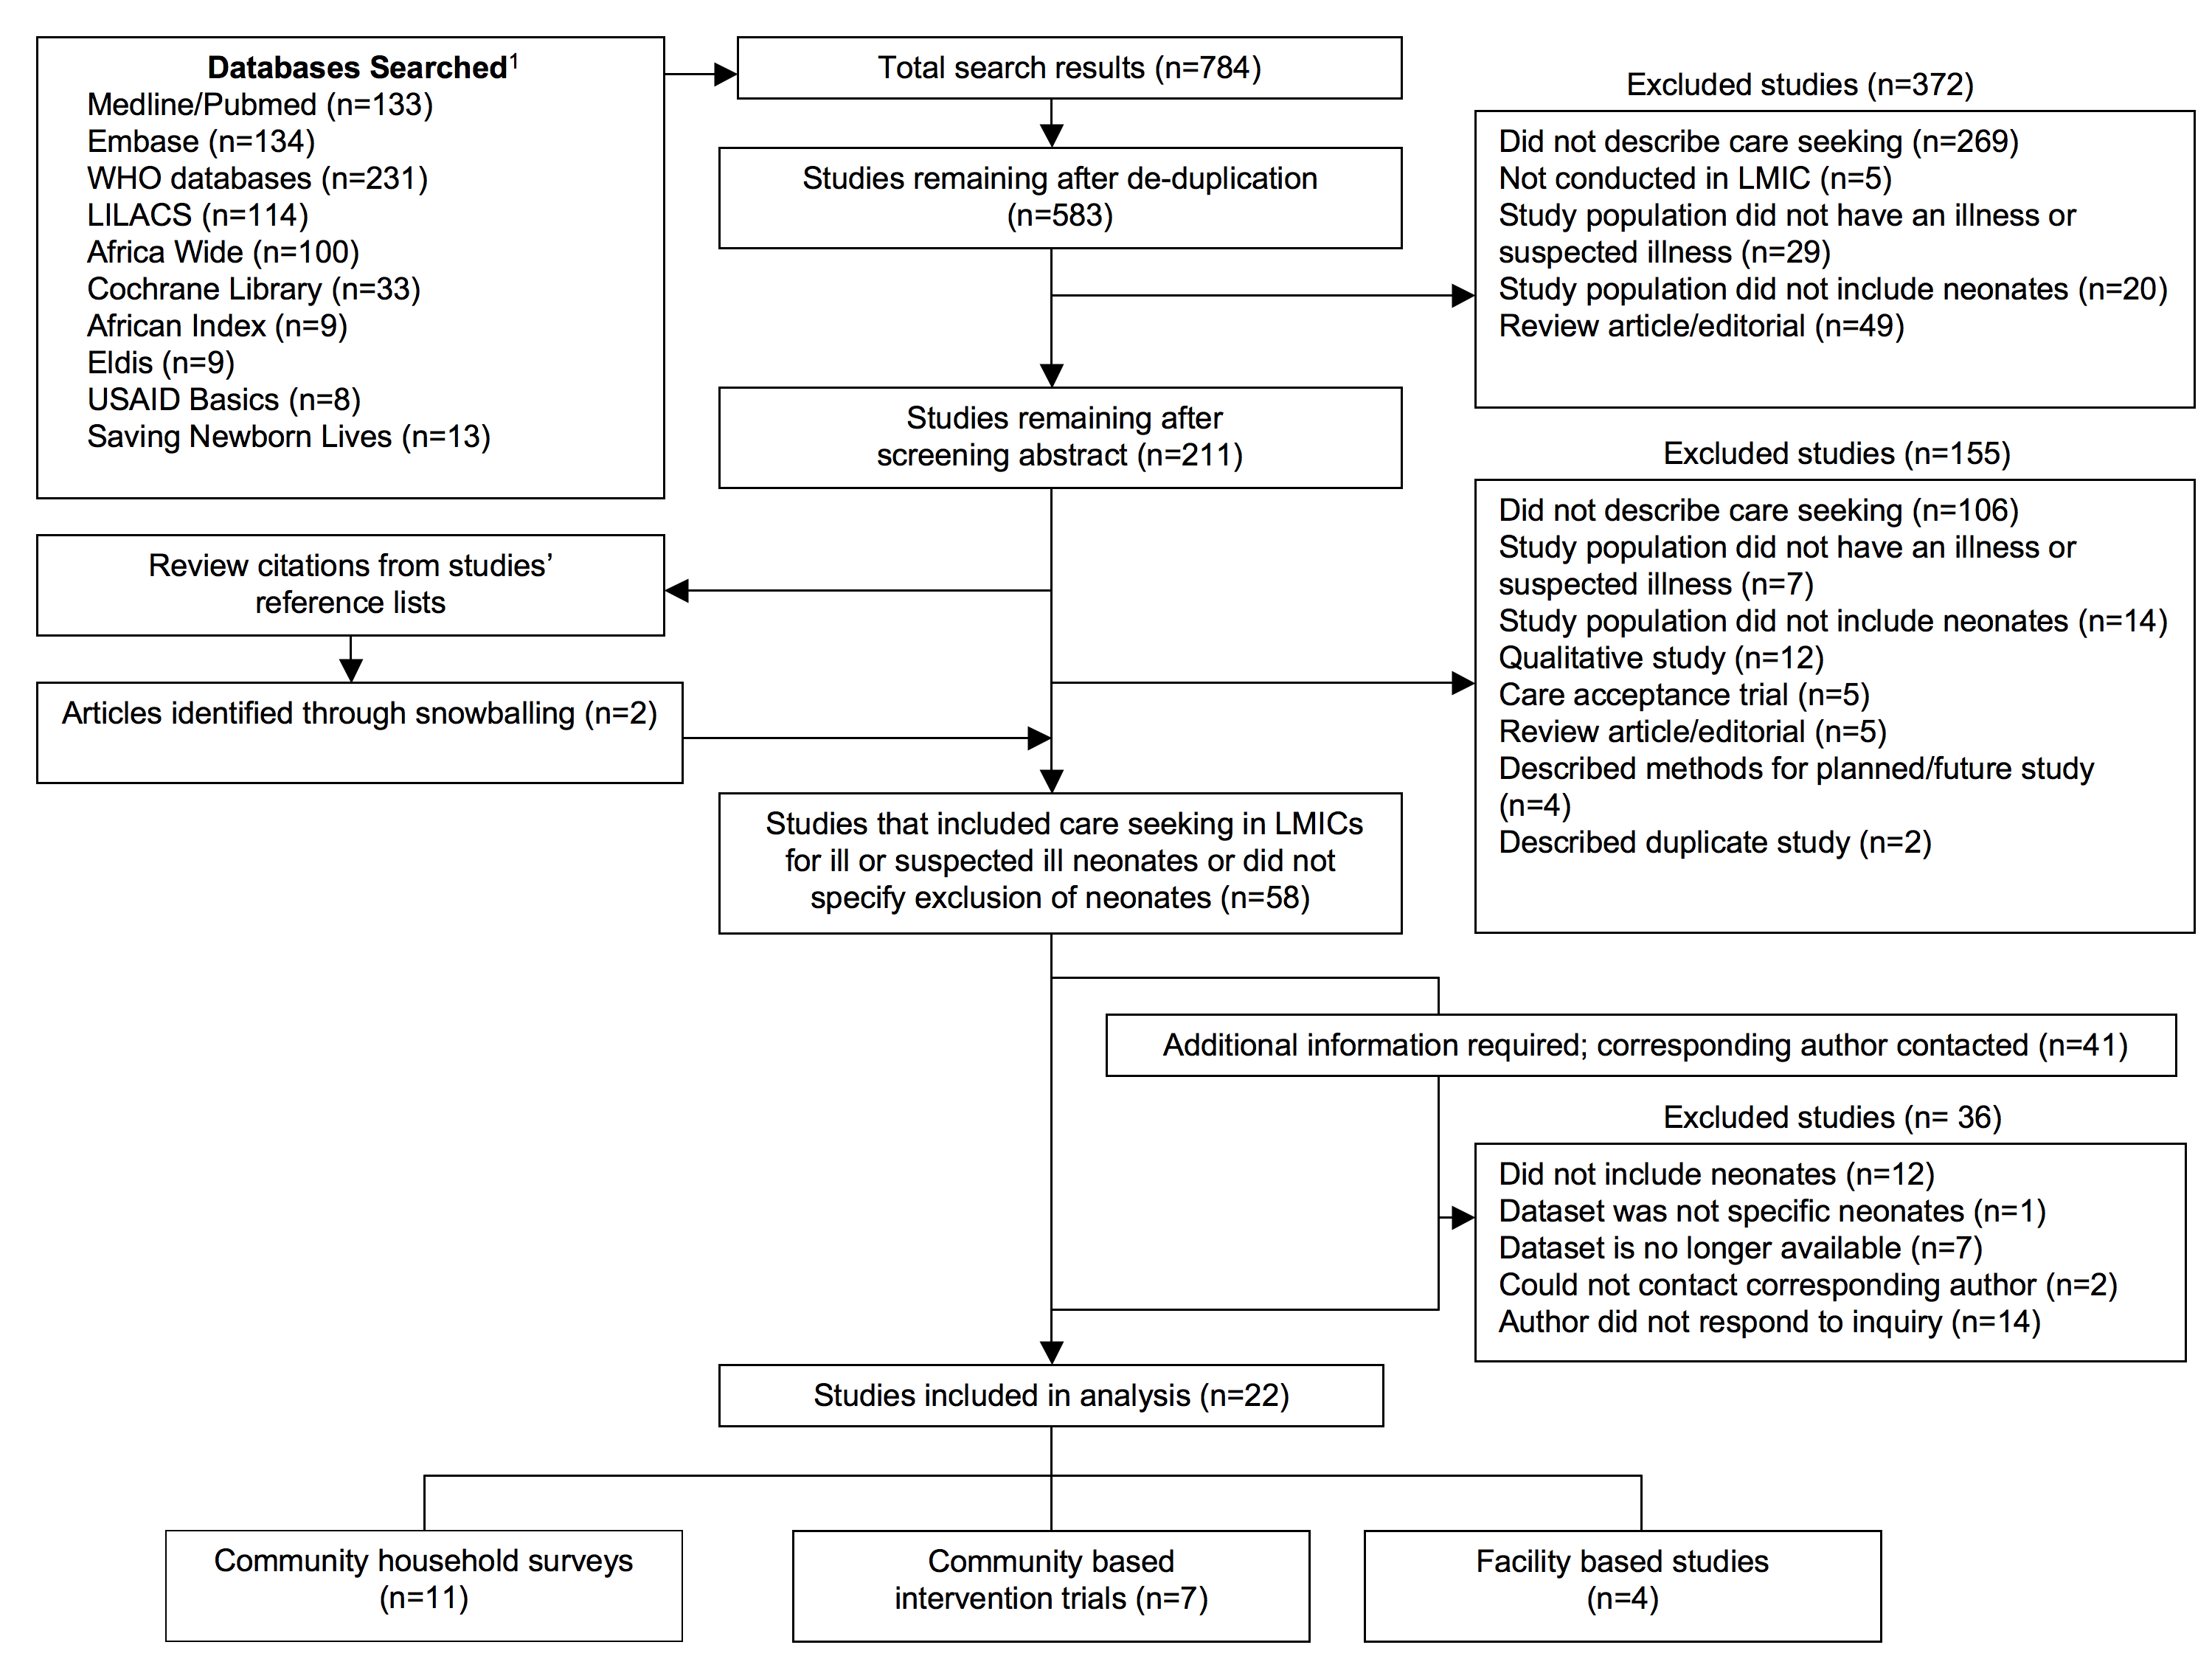 Literature flowchart of care seeking for ill or suspected ill neonates.